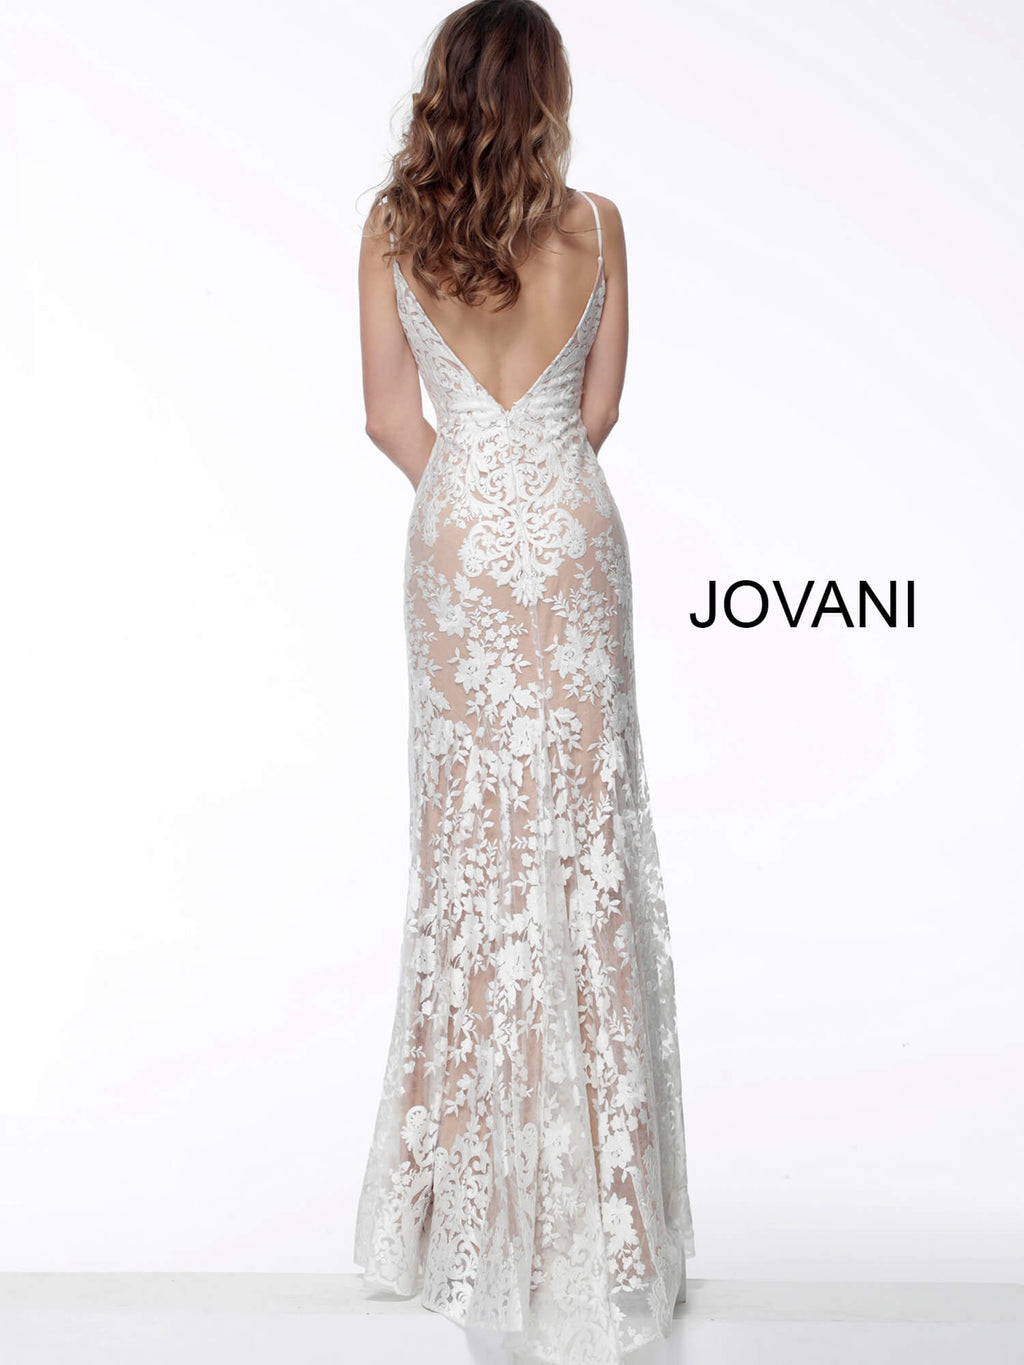 JOVANI 63754 Lace Evening Dress